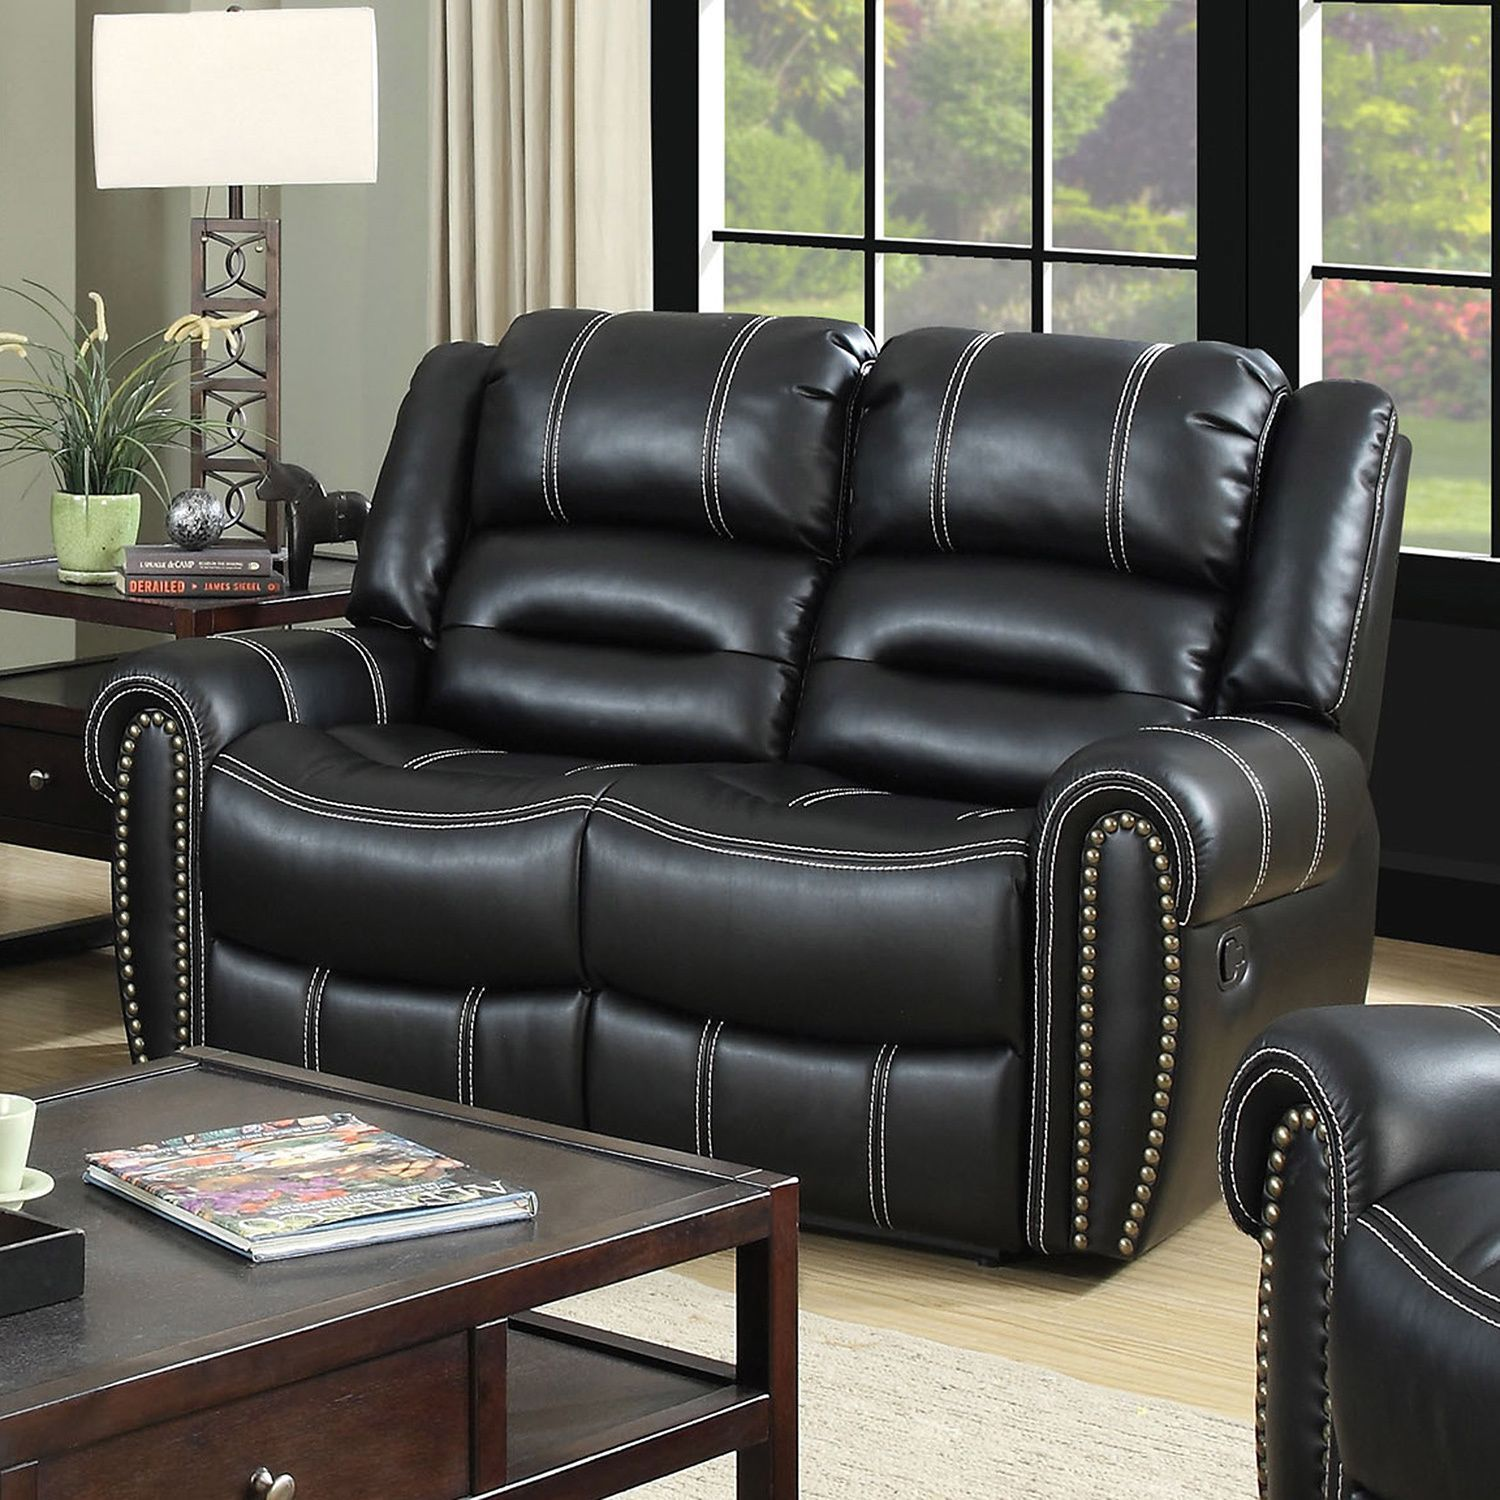 Furniture of america dylan black leatherette reclining loveseat